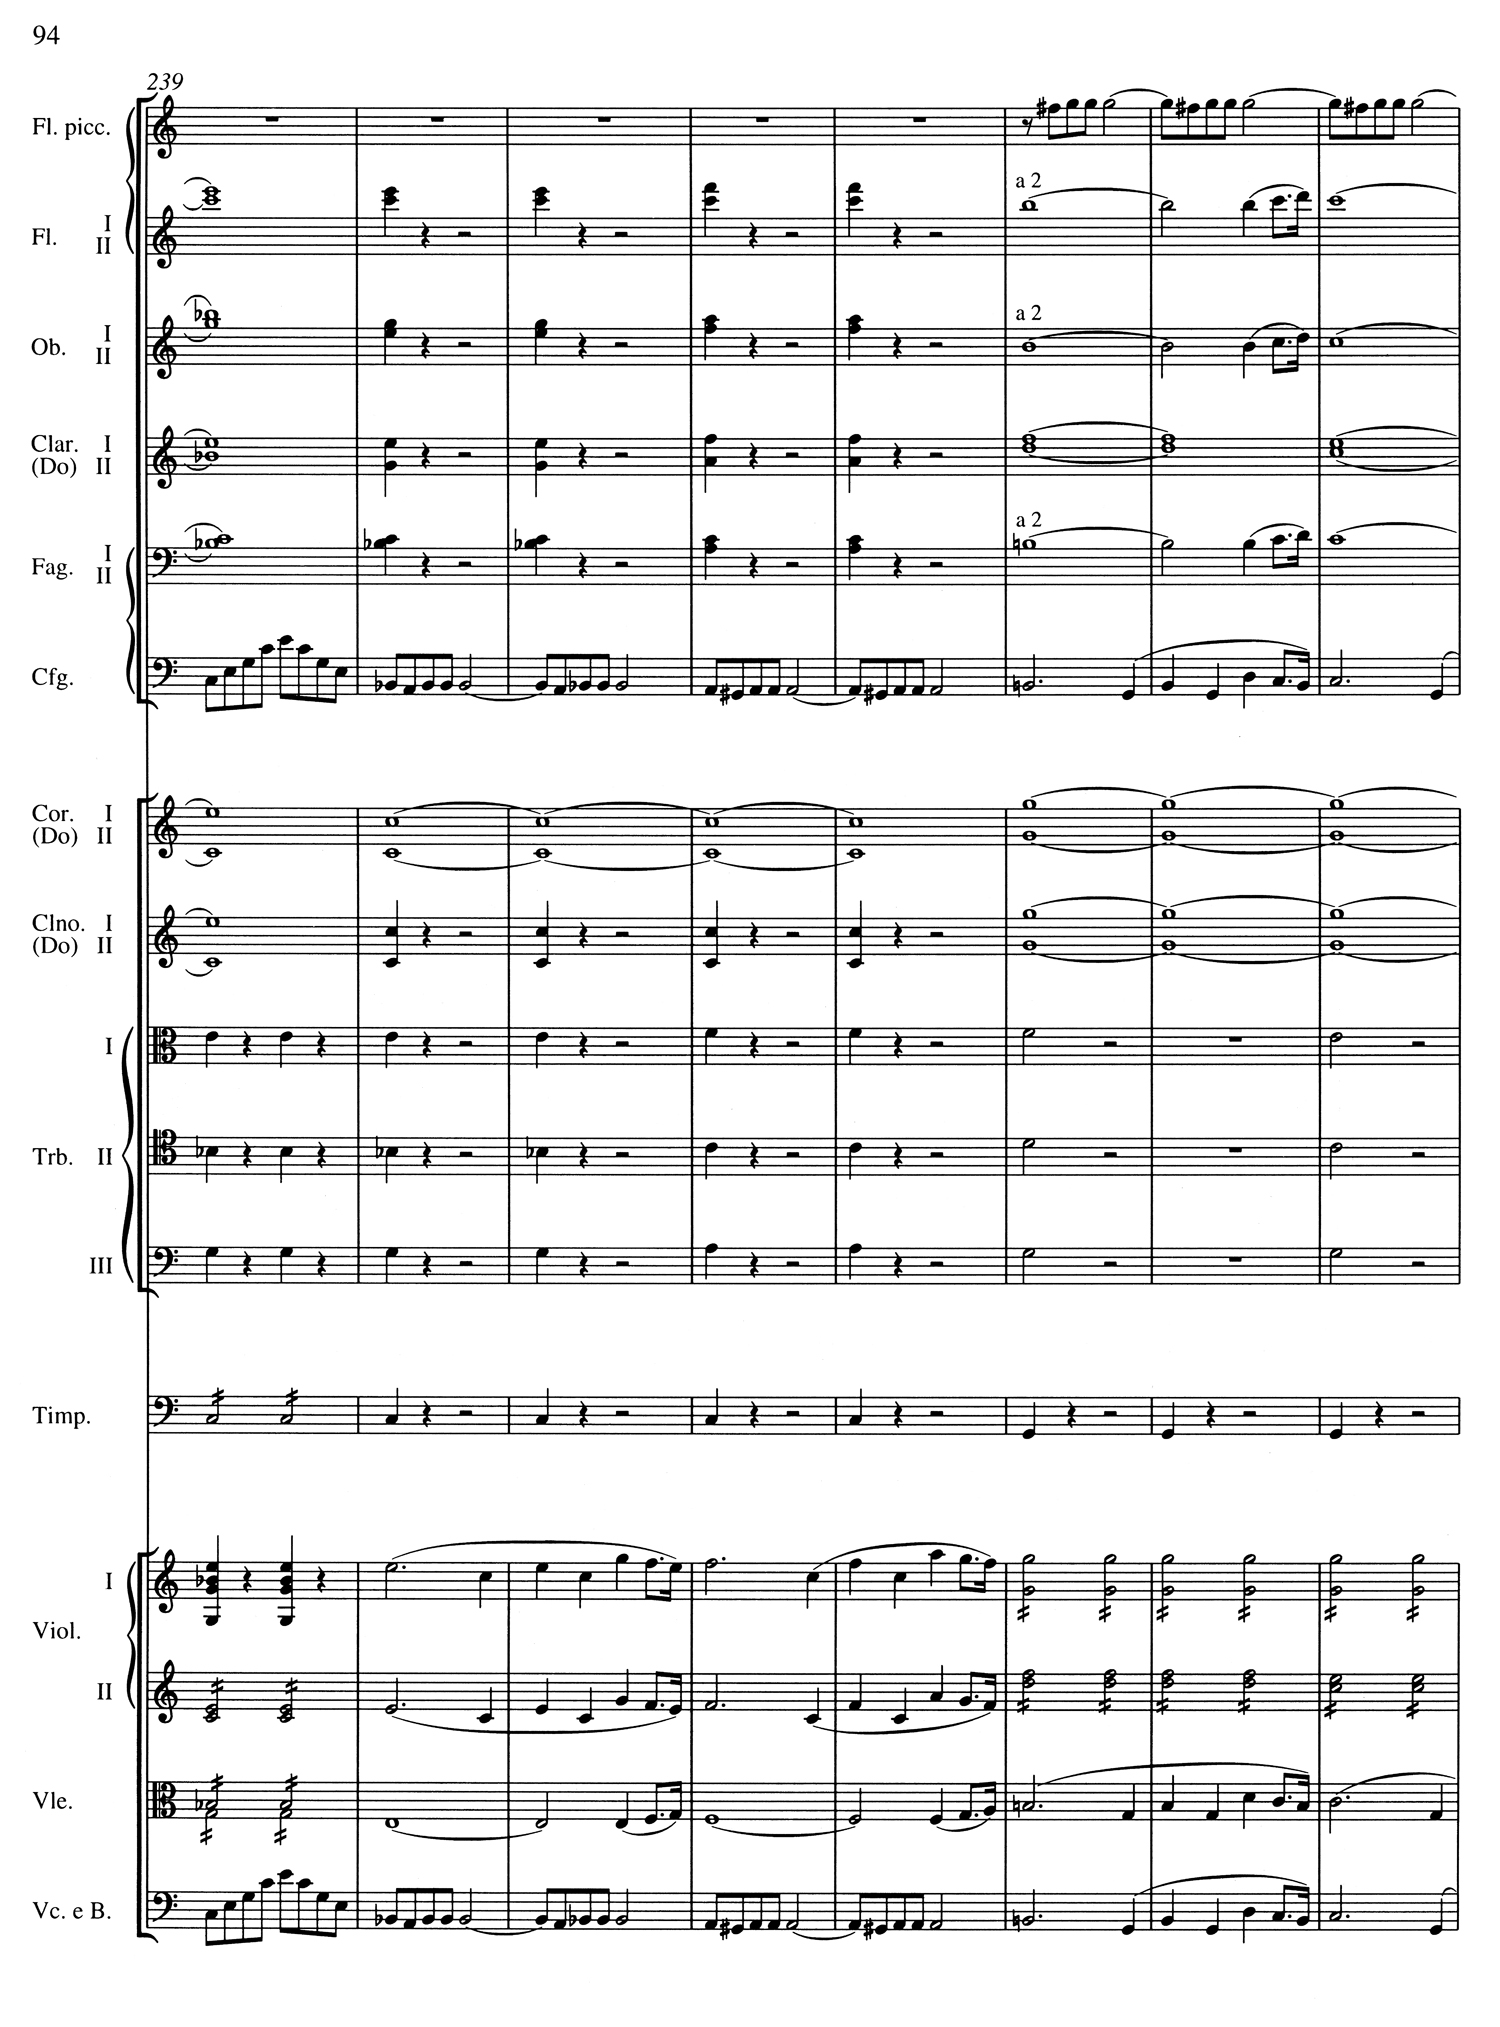 Beethoven 5 Score Page 6.jpg